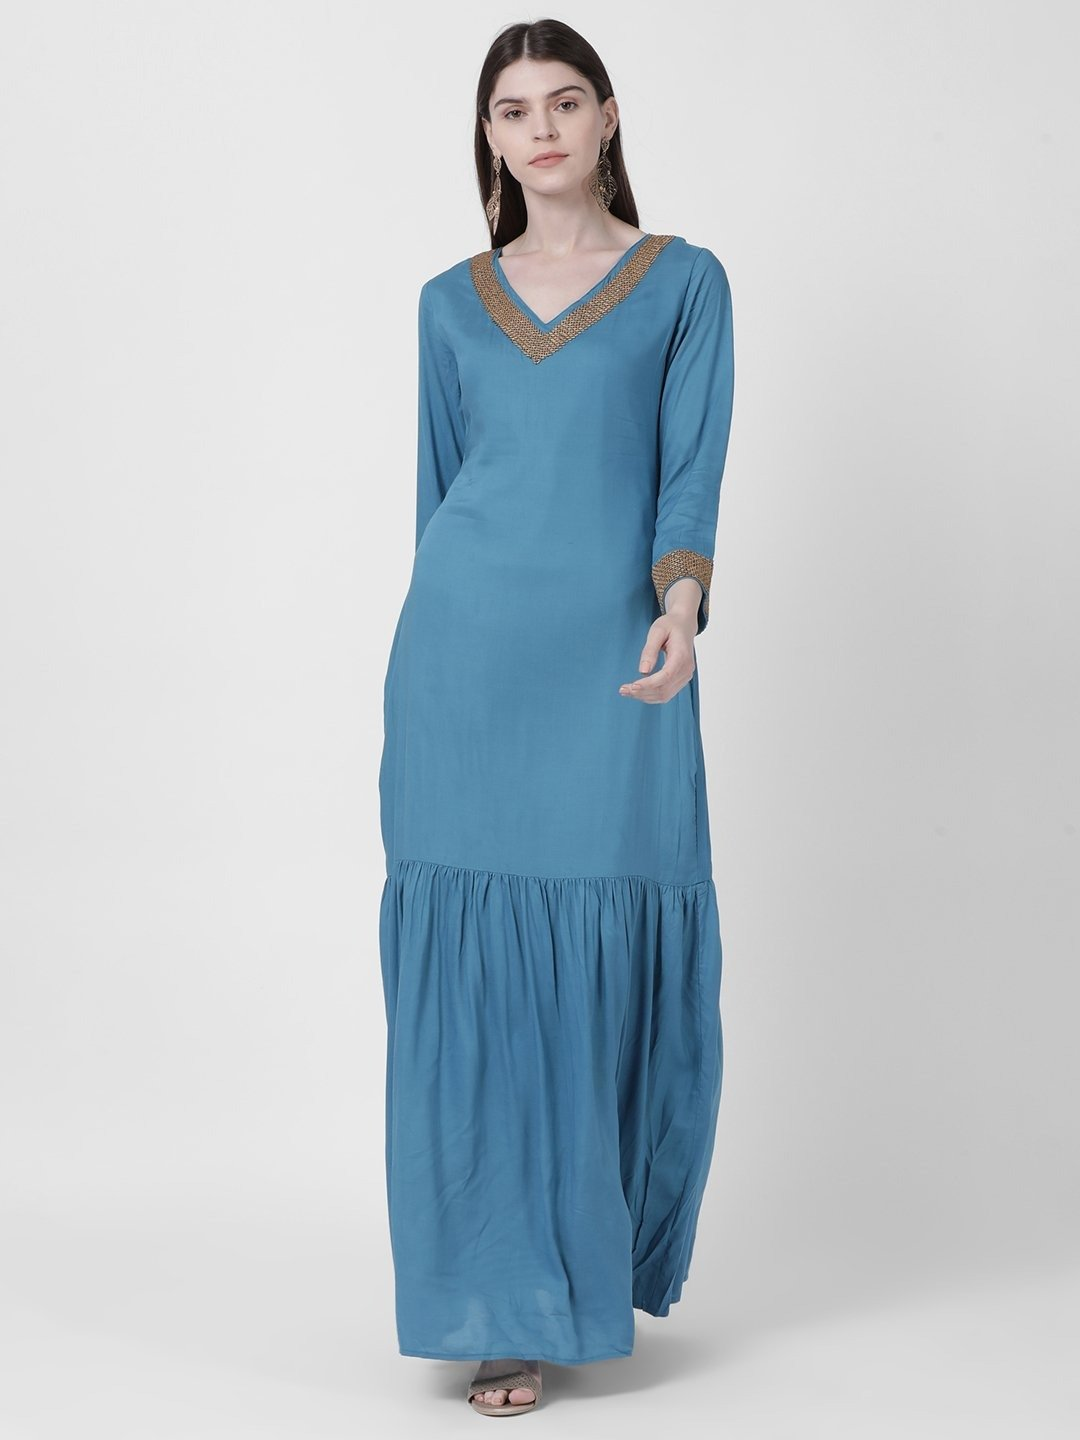 BLUE KAFTAN EMBELLISHED DRESS - Rossbelle